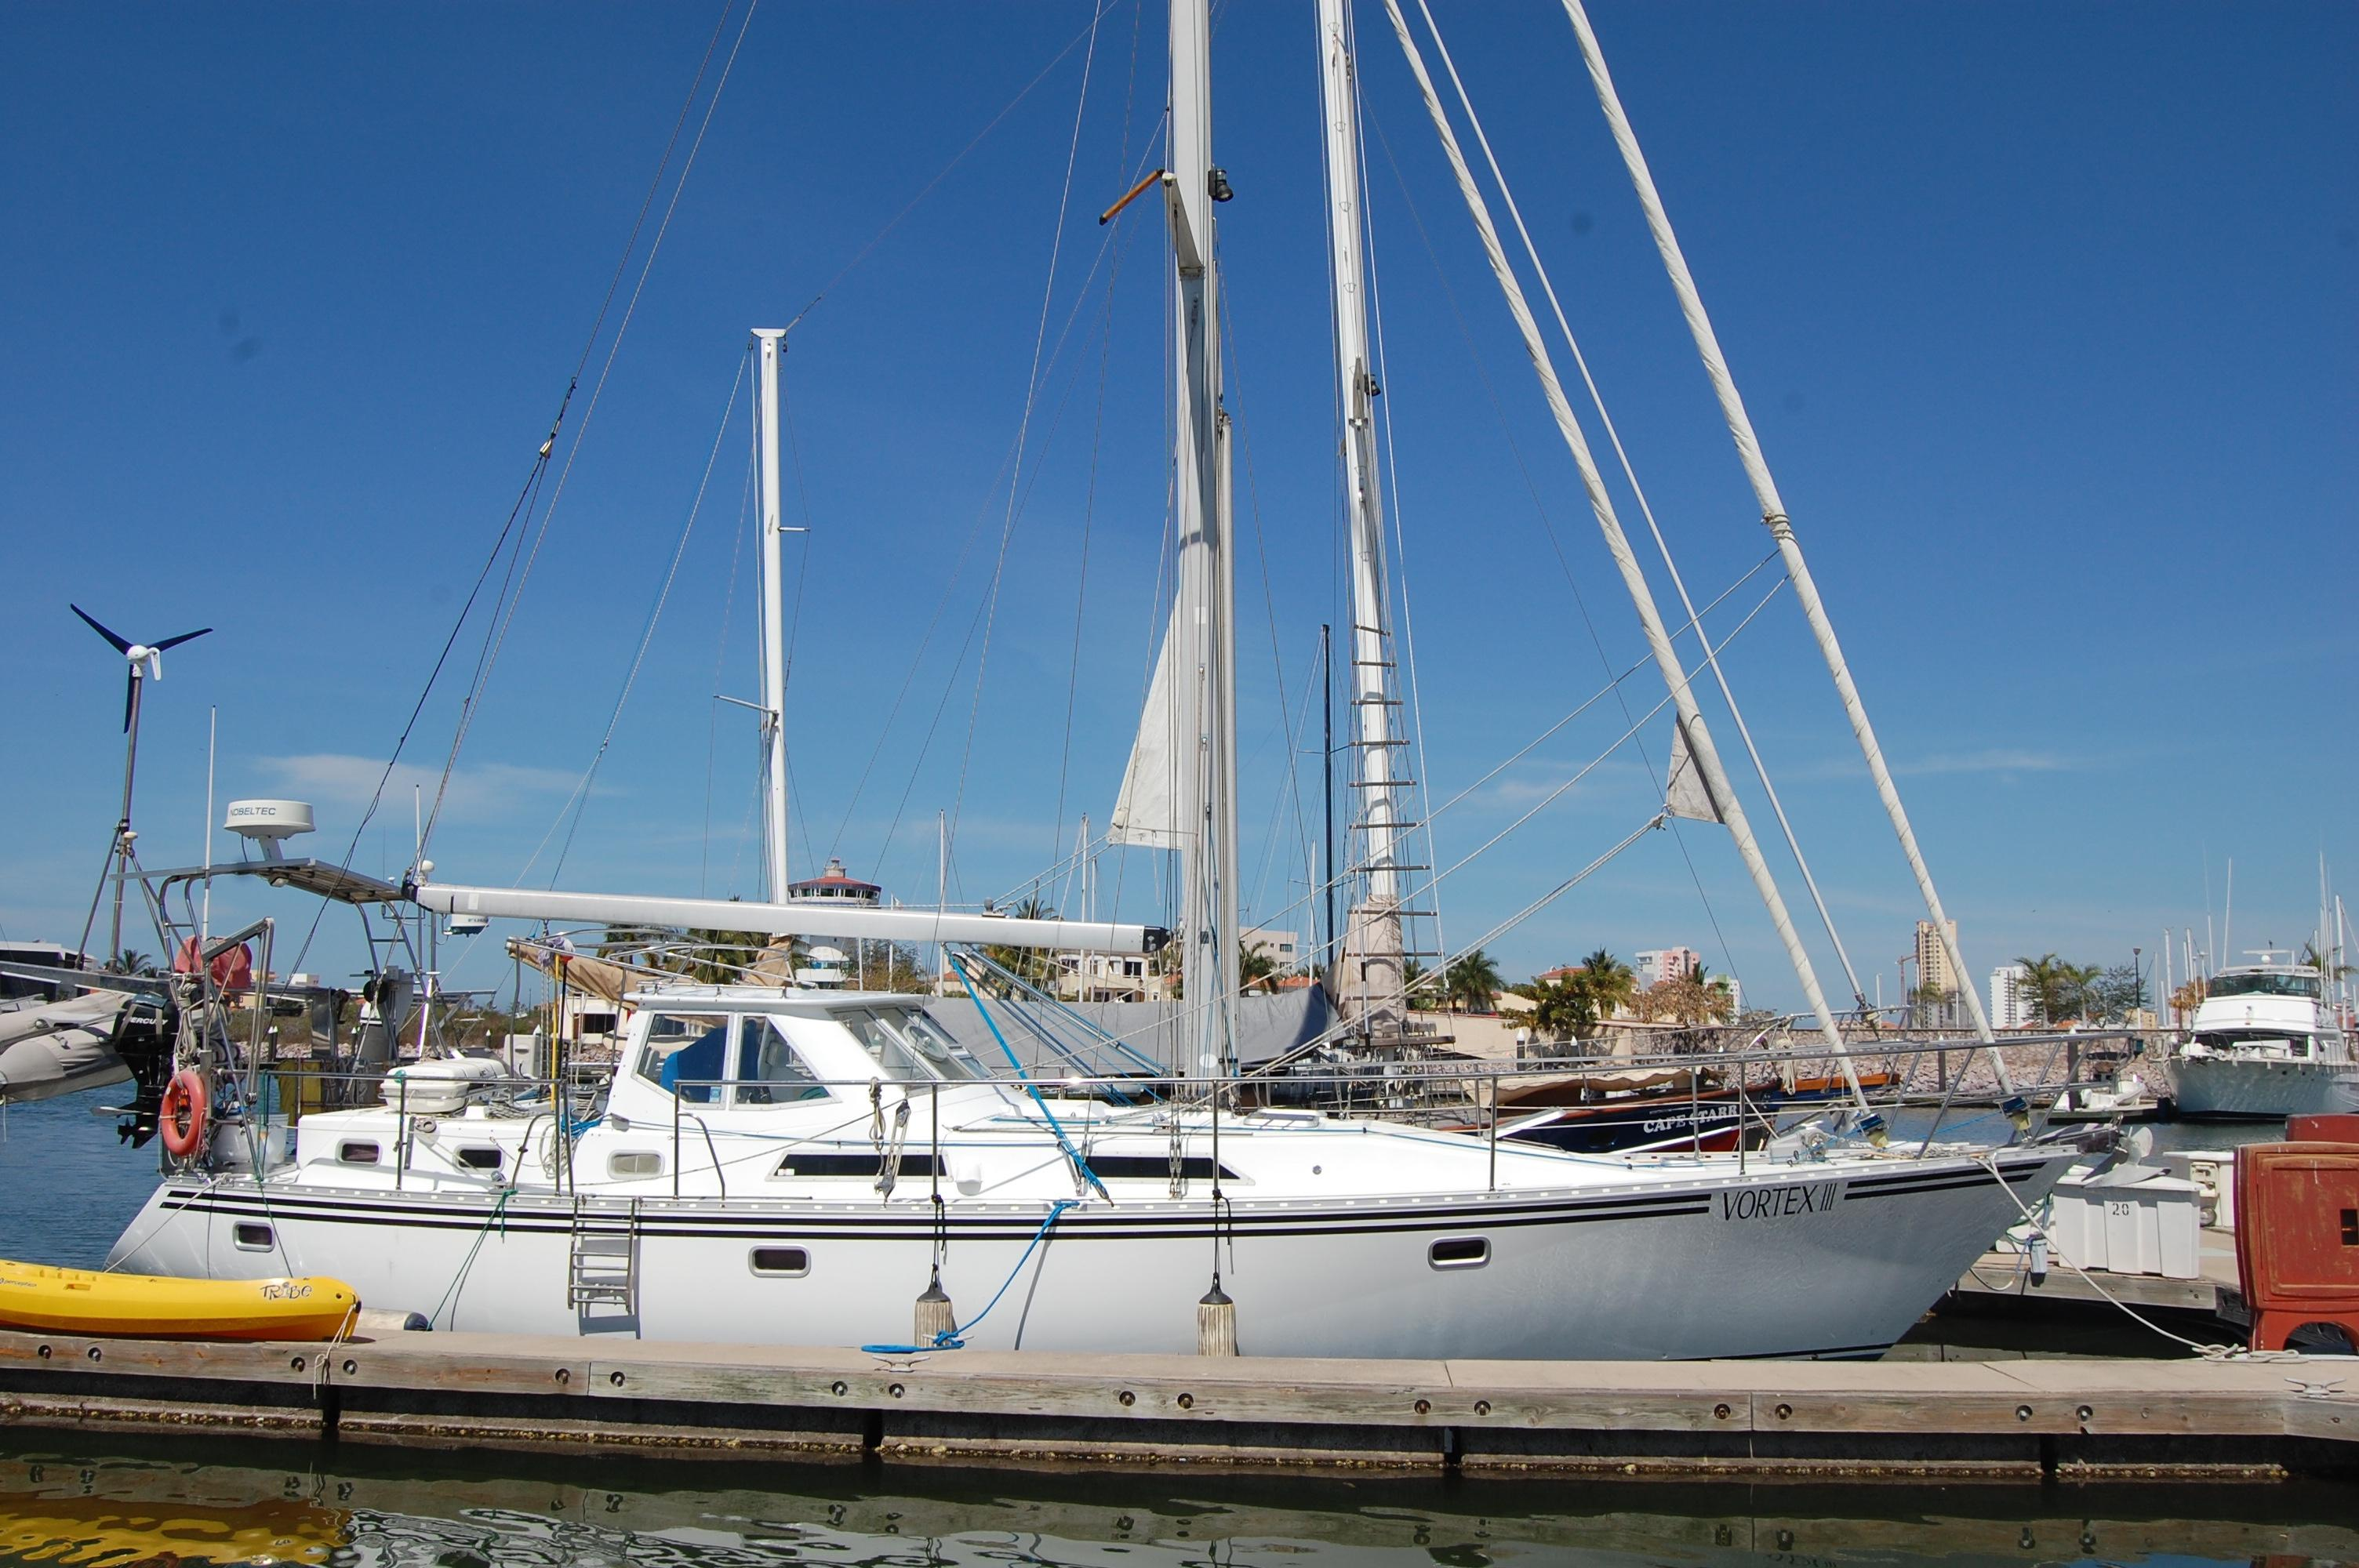 46' Maple Leaf Queen Cutter+Boat for sale!